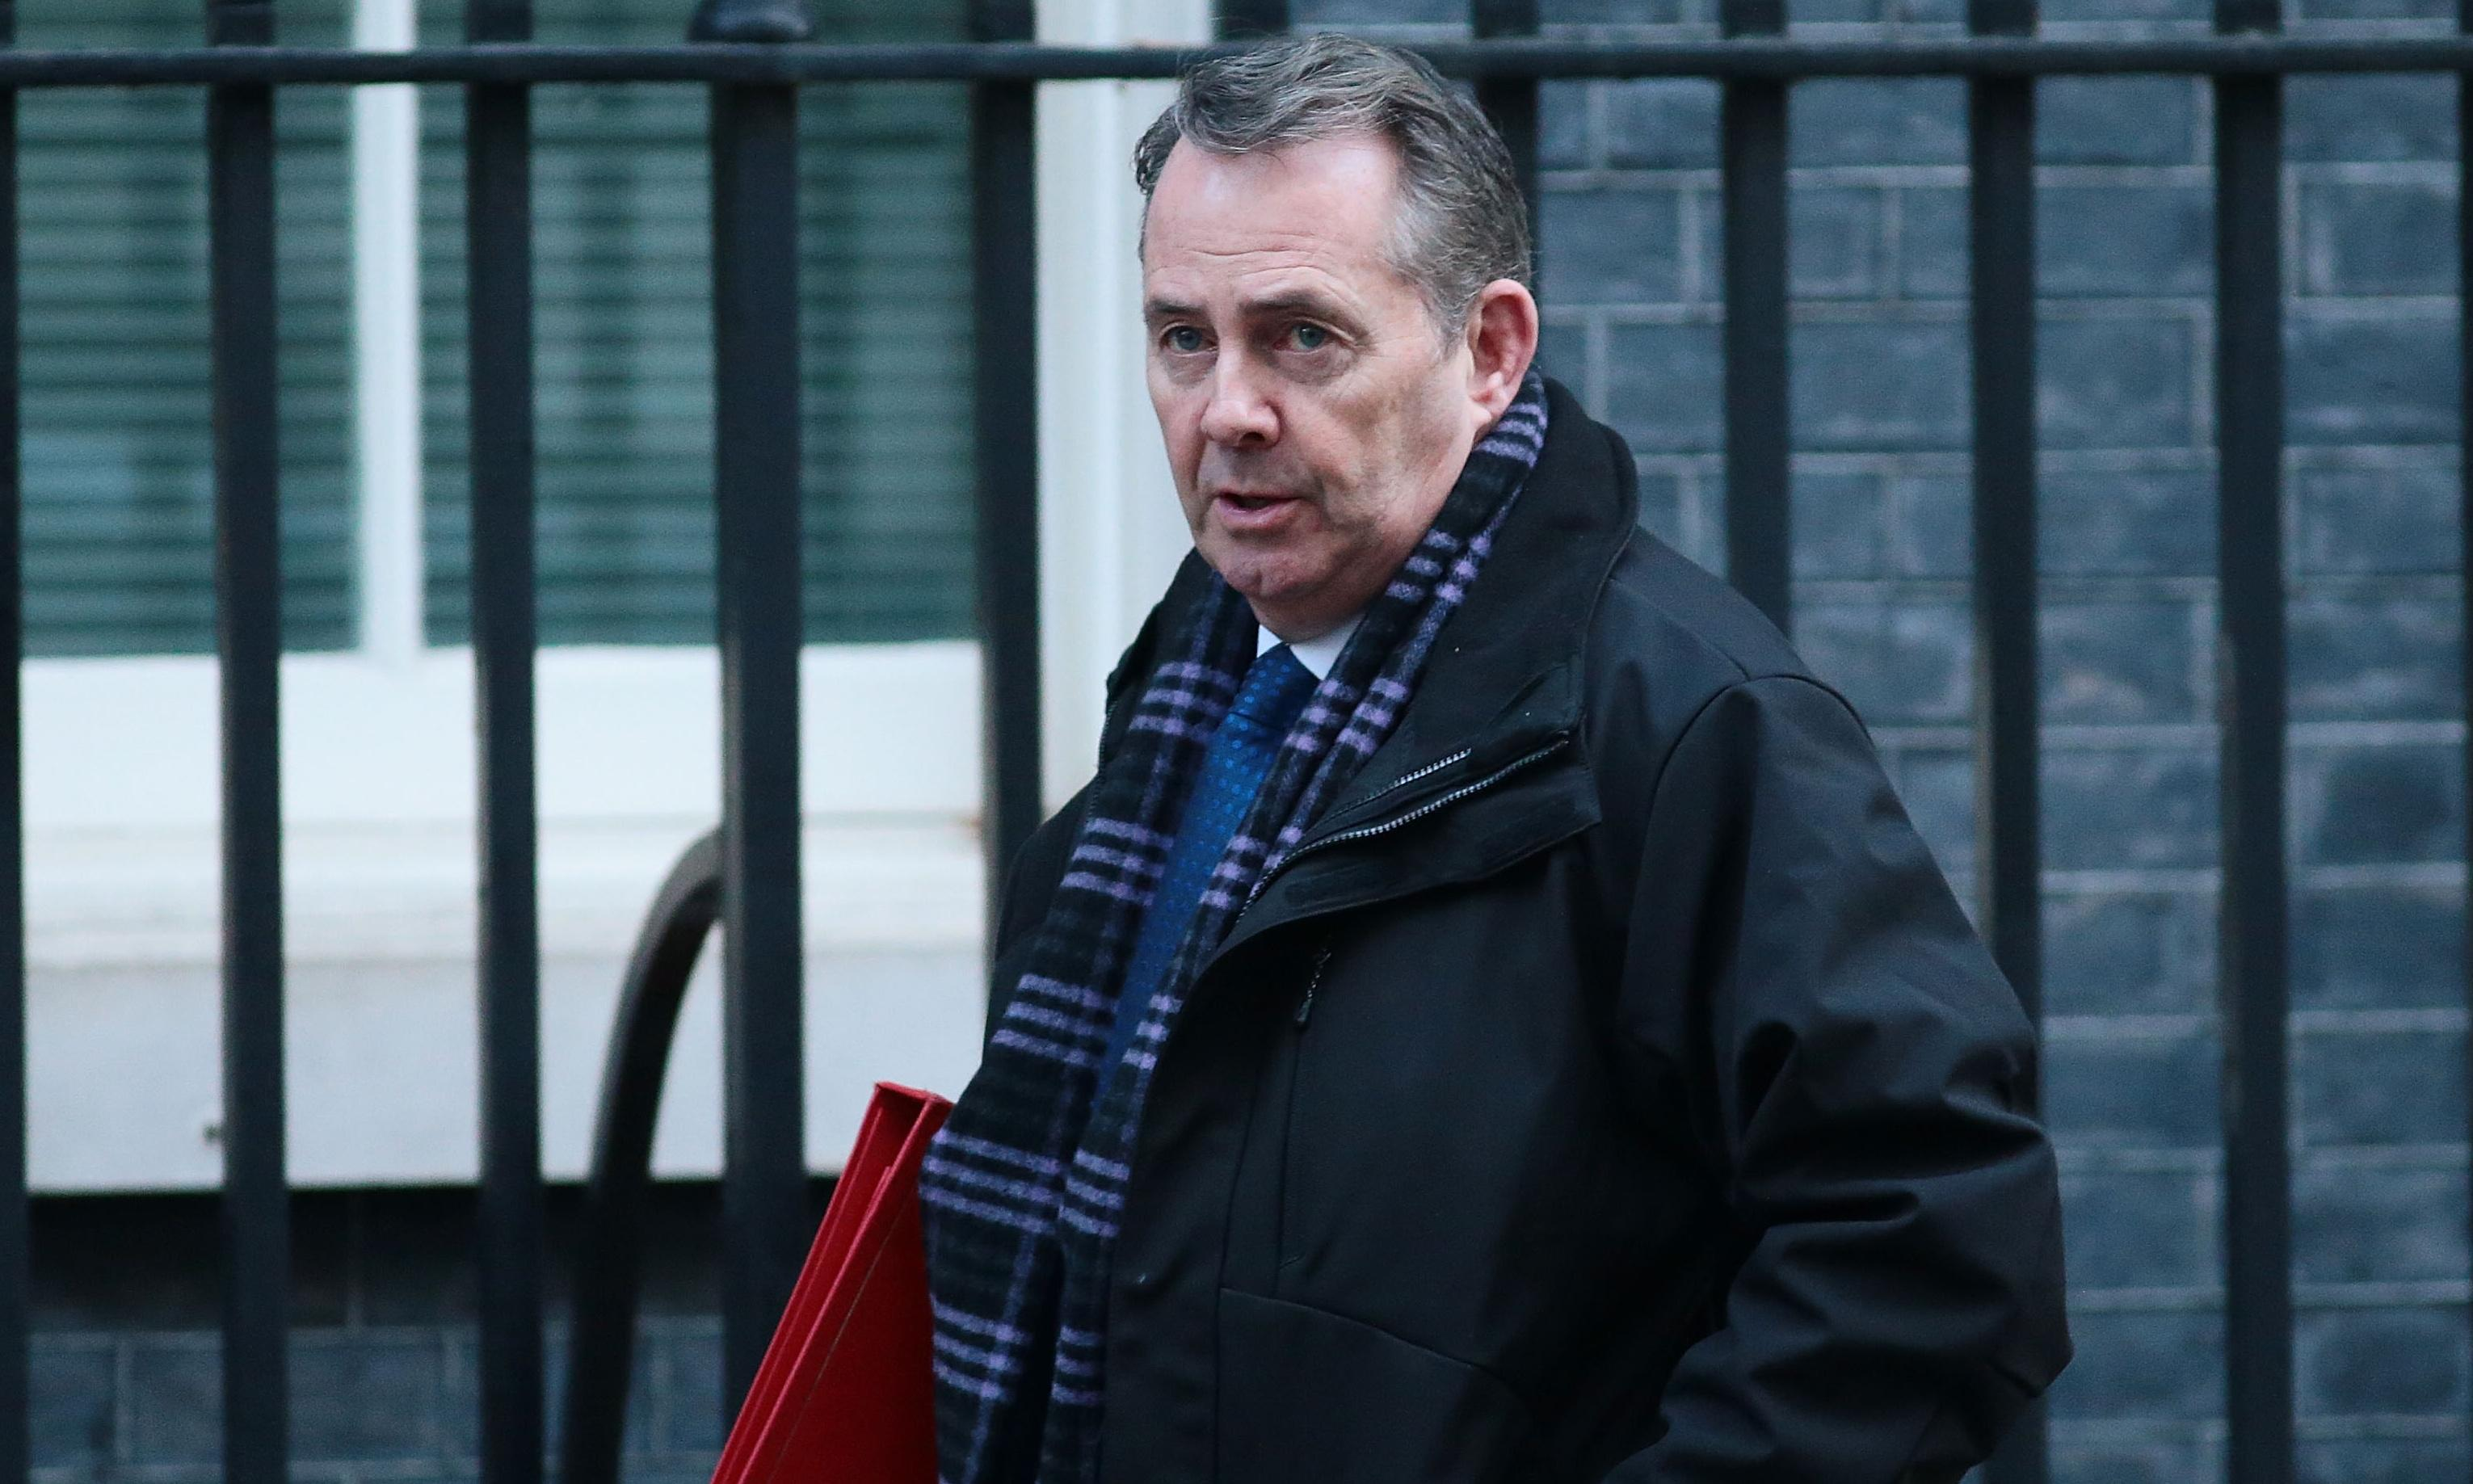 Liam Fox accuses MPs of trying to 'steal' Brexit from voters